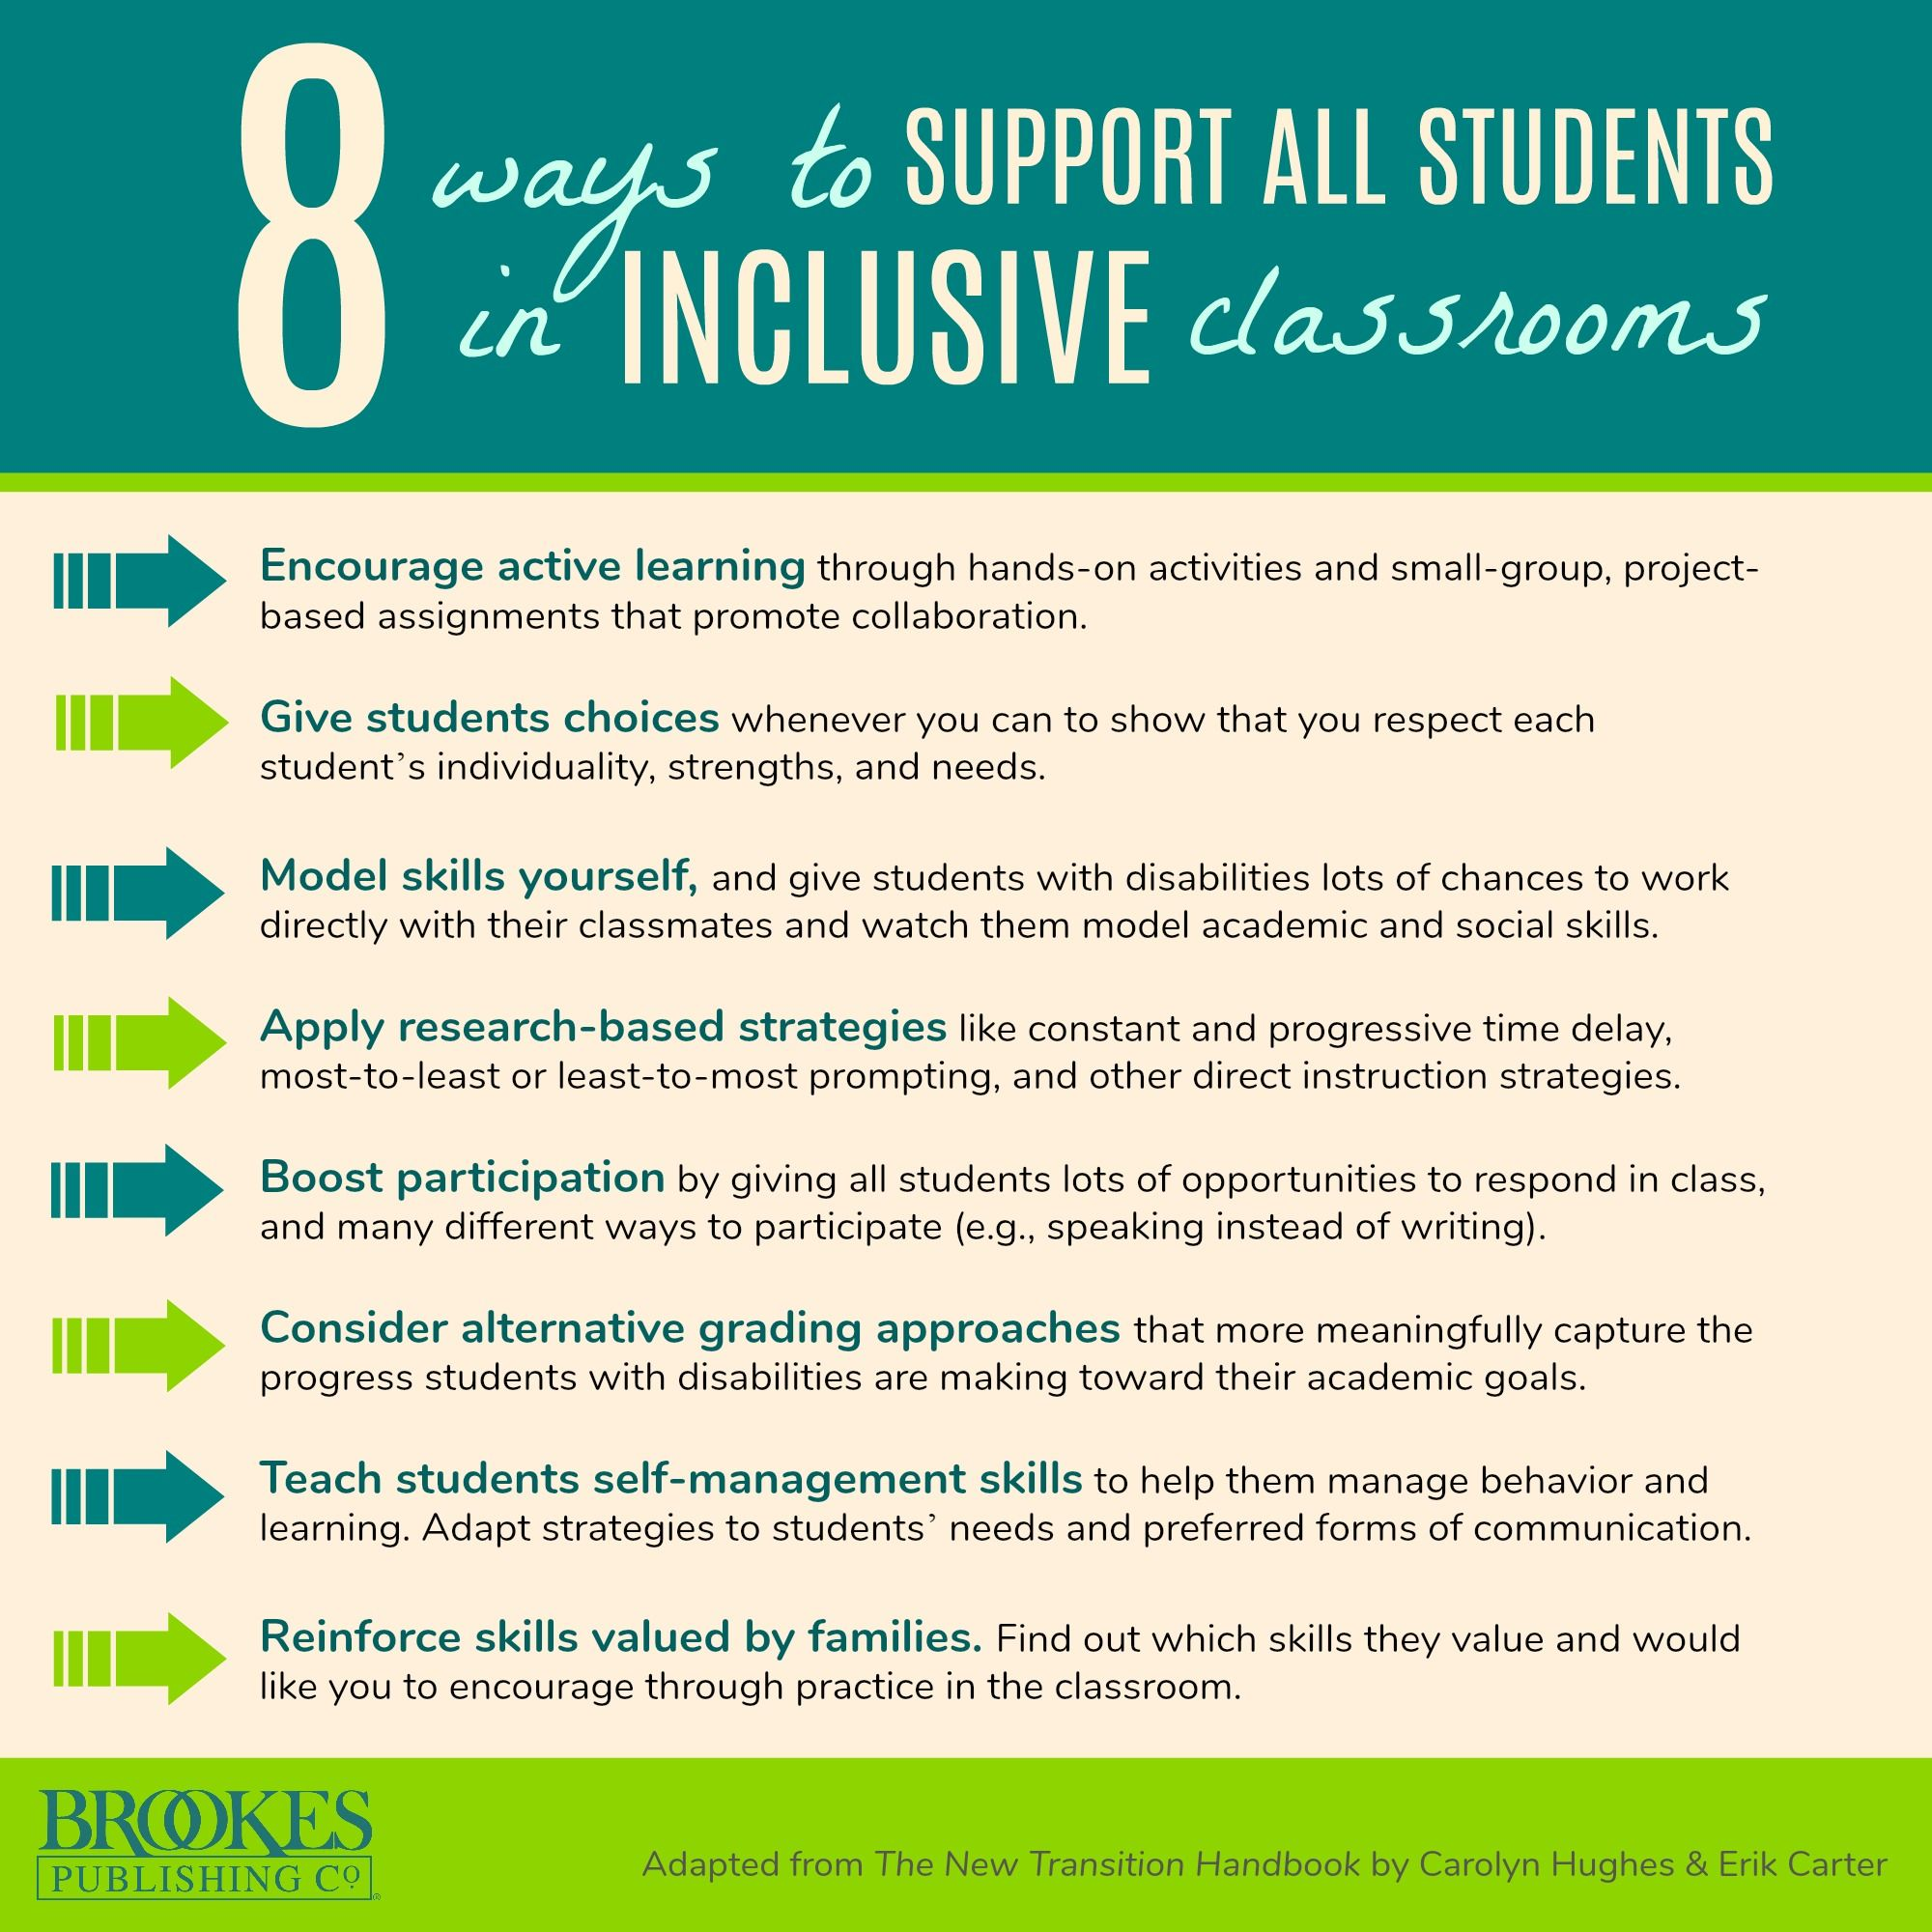 We Can Do Lots More For Students With >> 8 Ways You Can Support All Learners In Your Inclusive Classroom